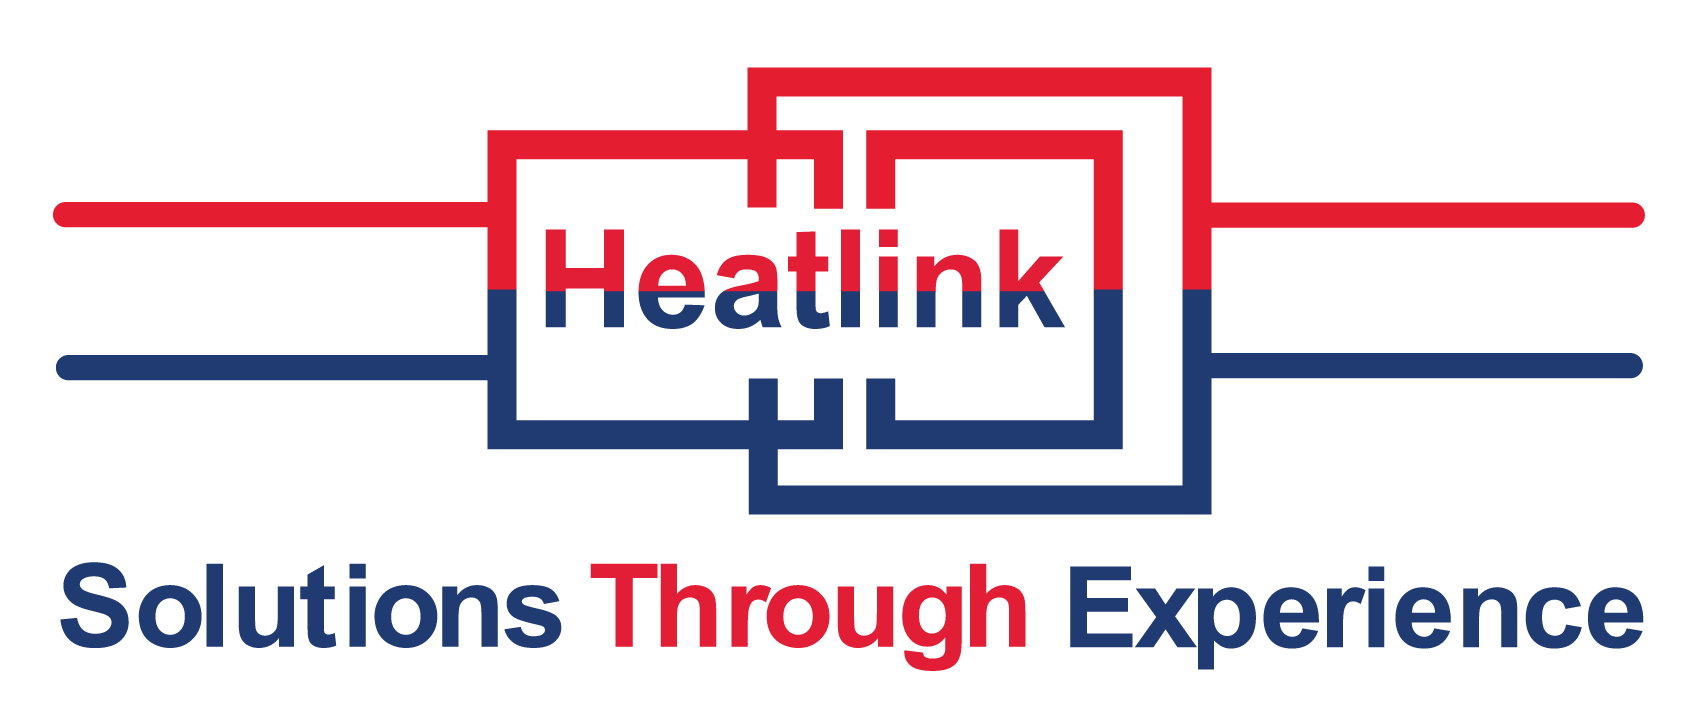 HEATLINK LOGO - Flexible Requirements for Luxury Apartments